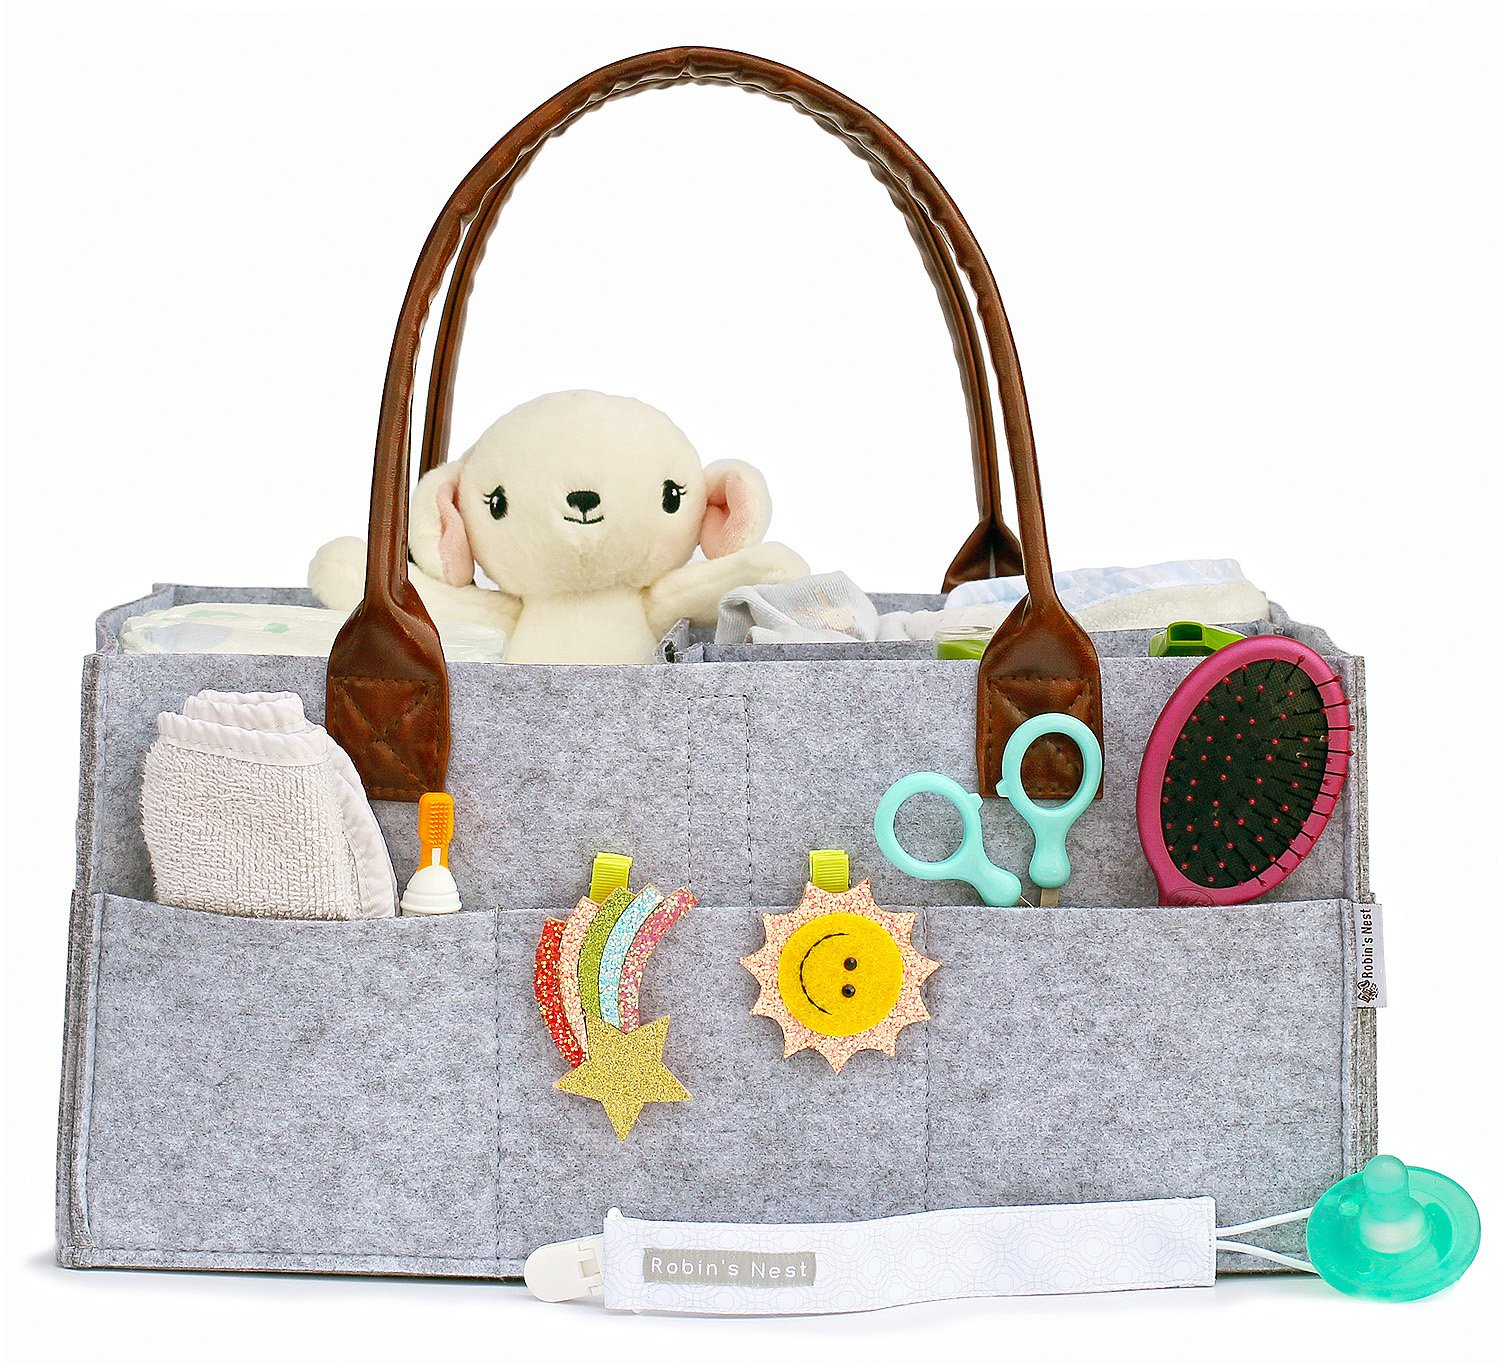 Baby Diaper Caddy & FREE Pacifier Clip | Nursery Changing Table Storage Bin | Portable Car Organizer for Diapers & Wipes | Art Supply Tote bag